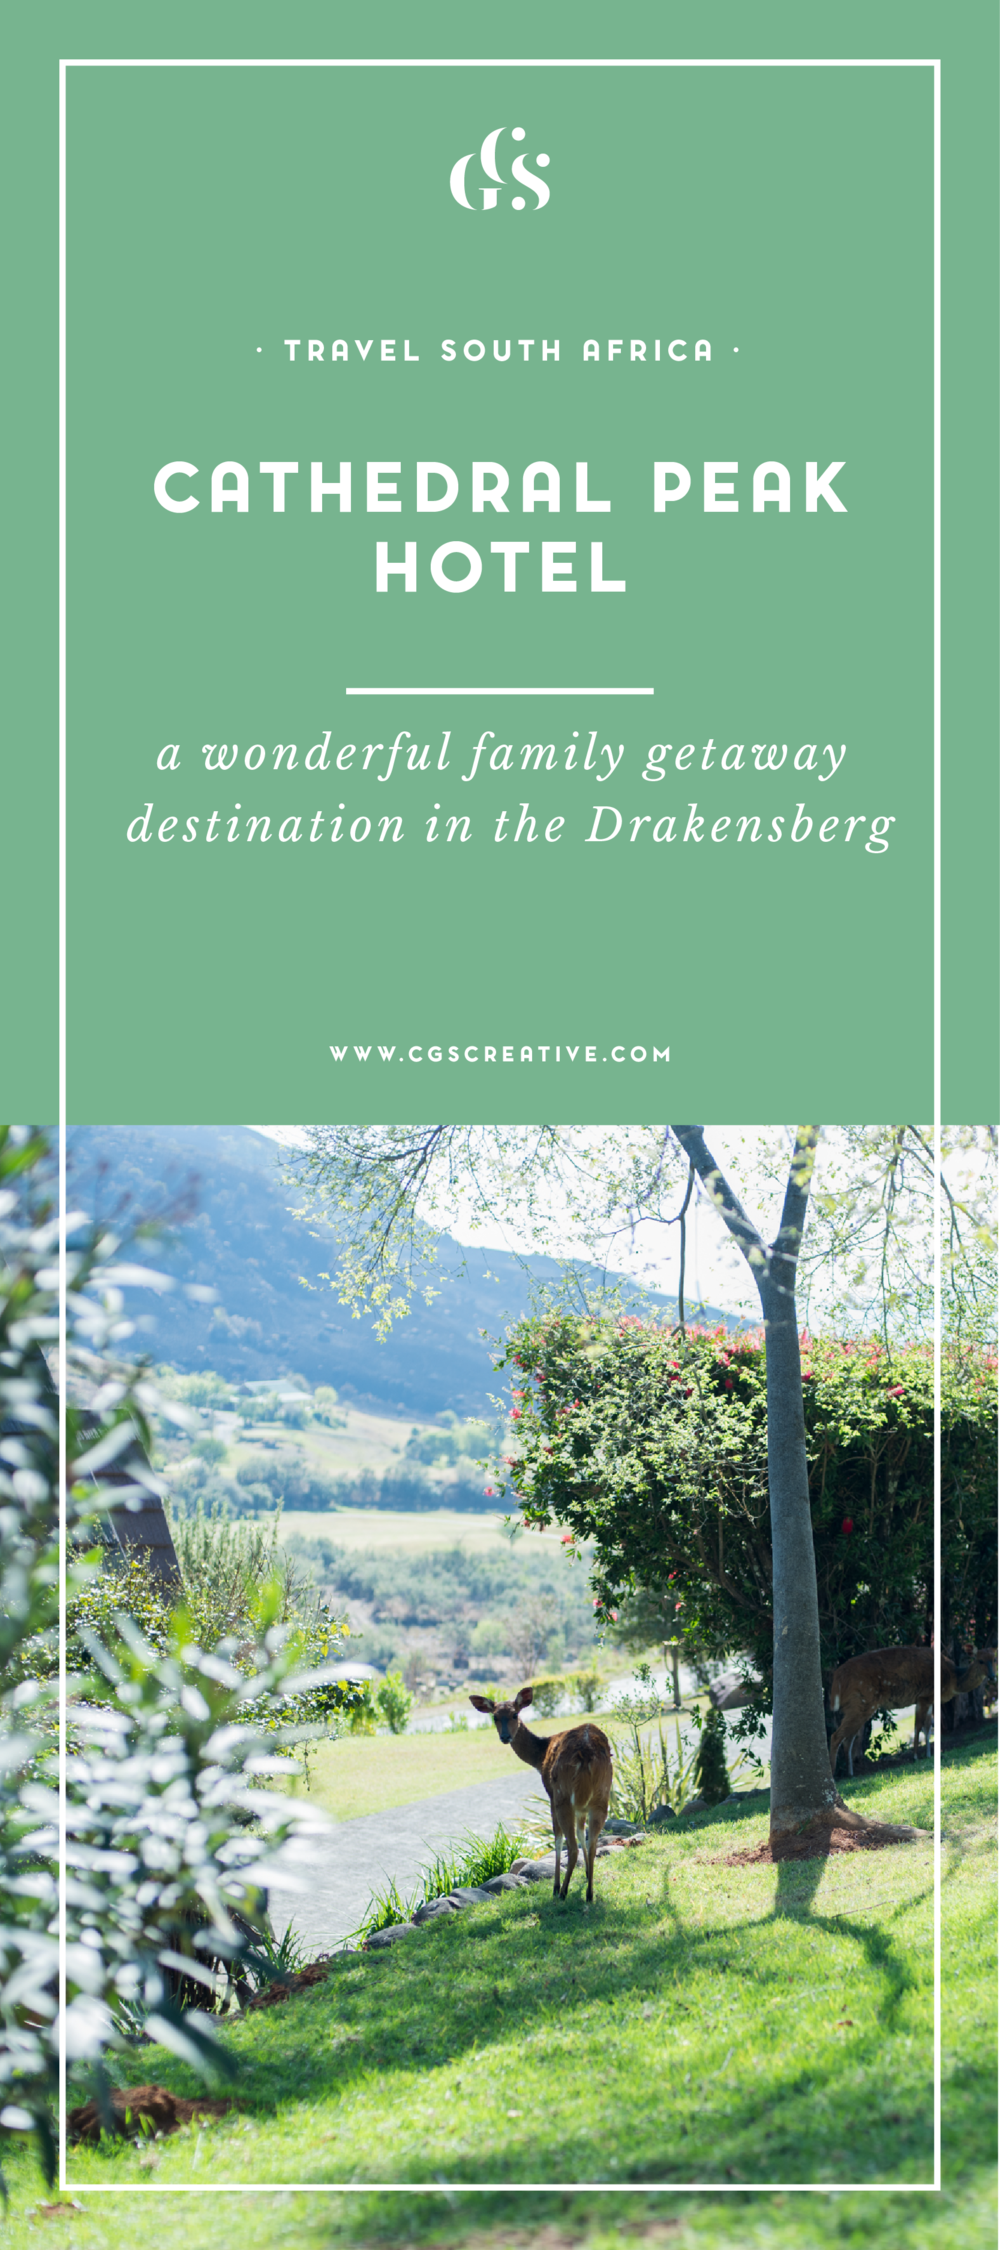 Cathedral Peak Hotel Family Holiday Destination Drakensberg_Artboard 3.png